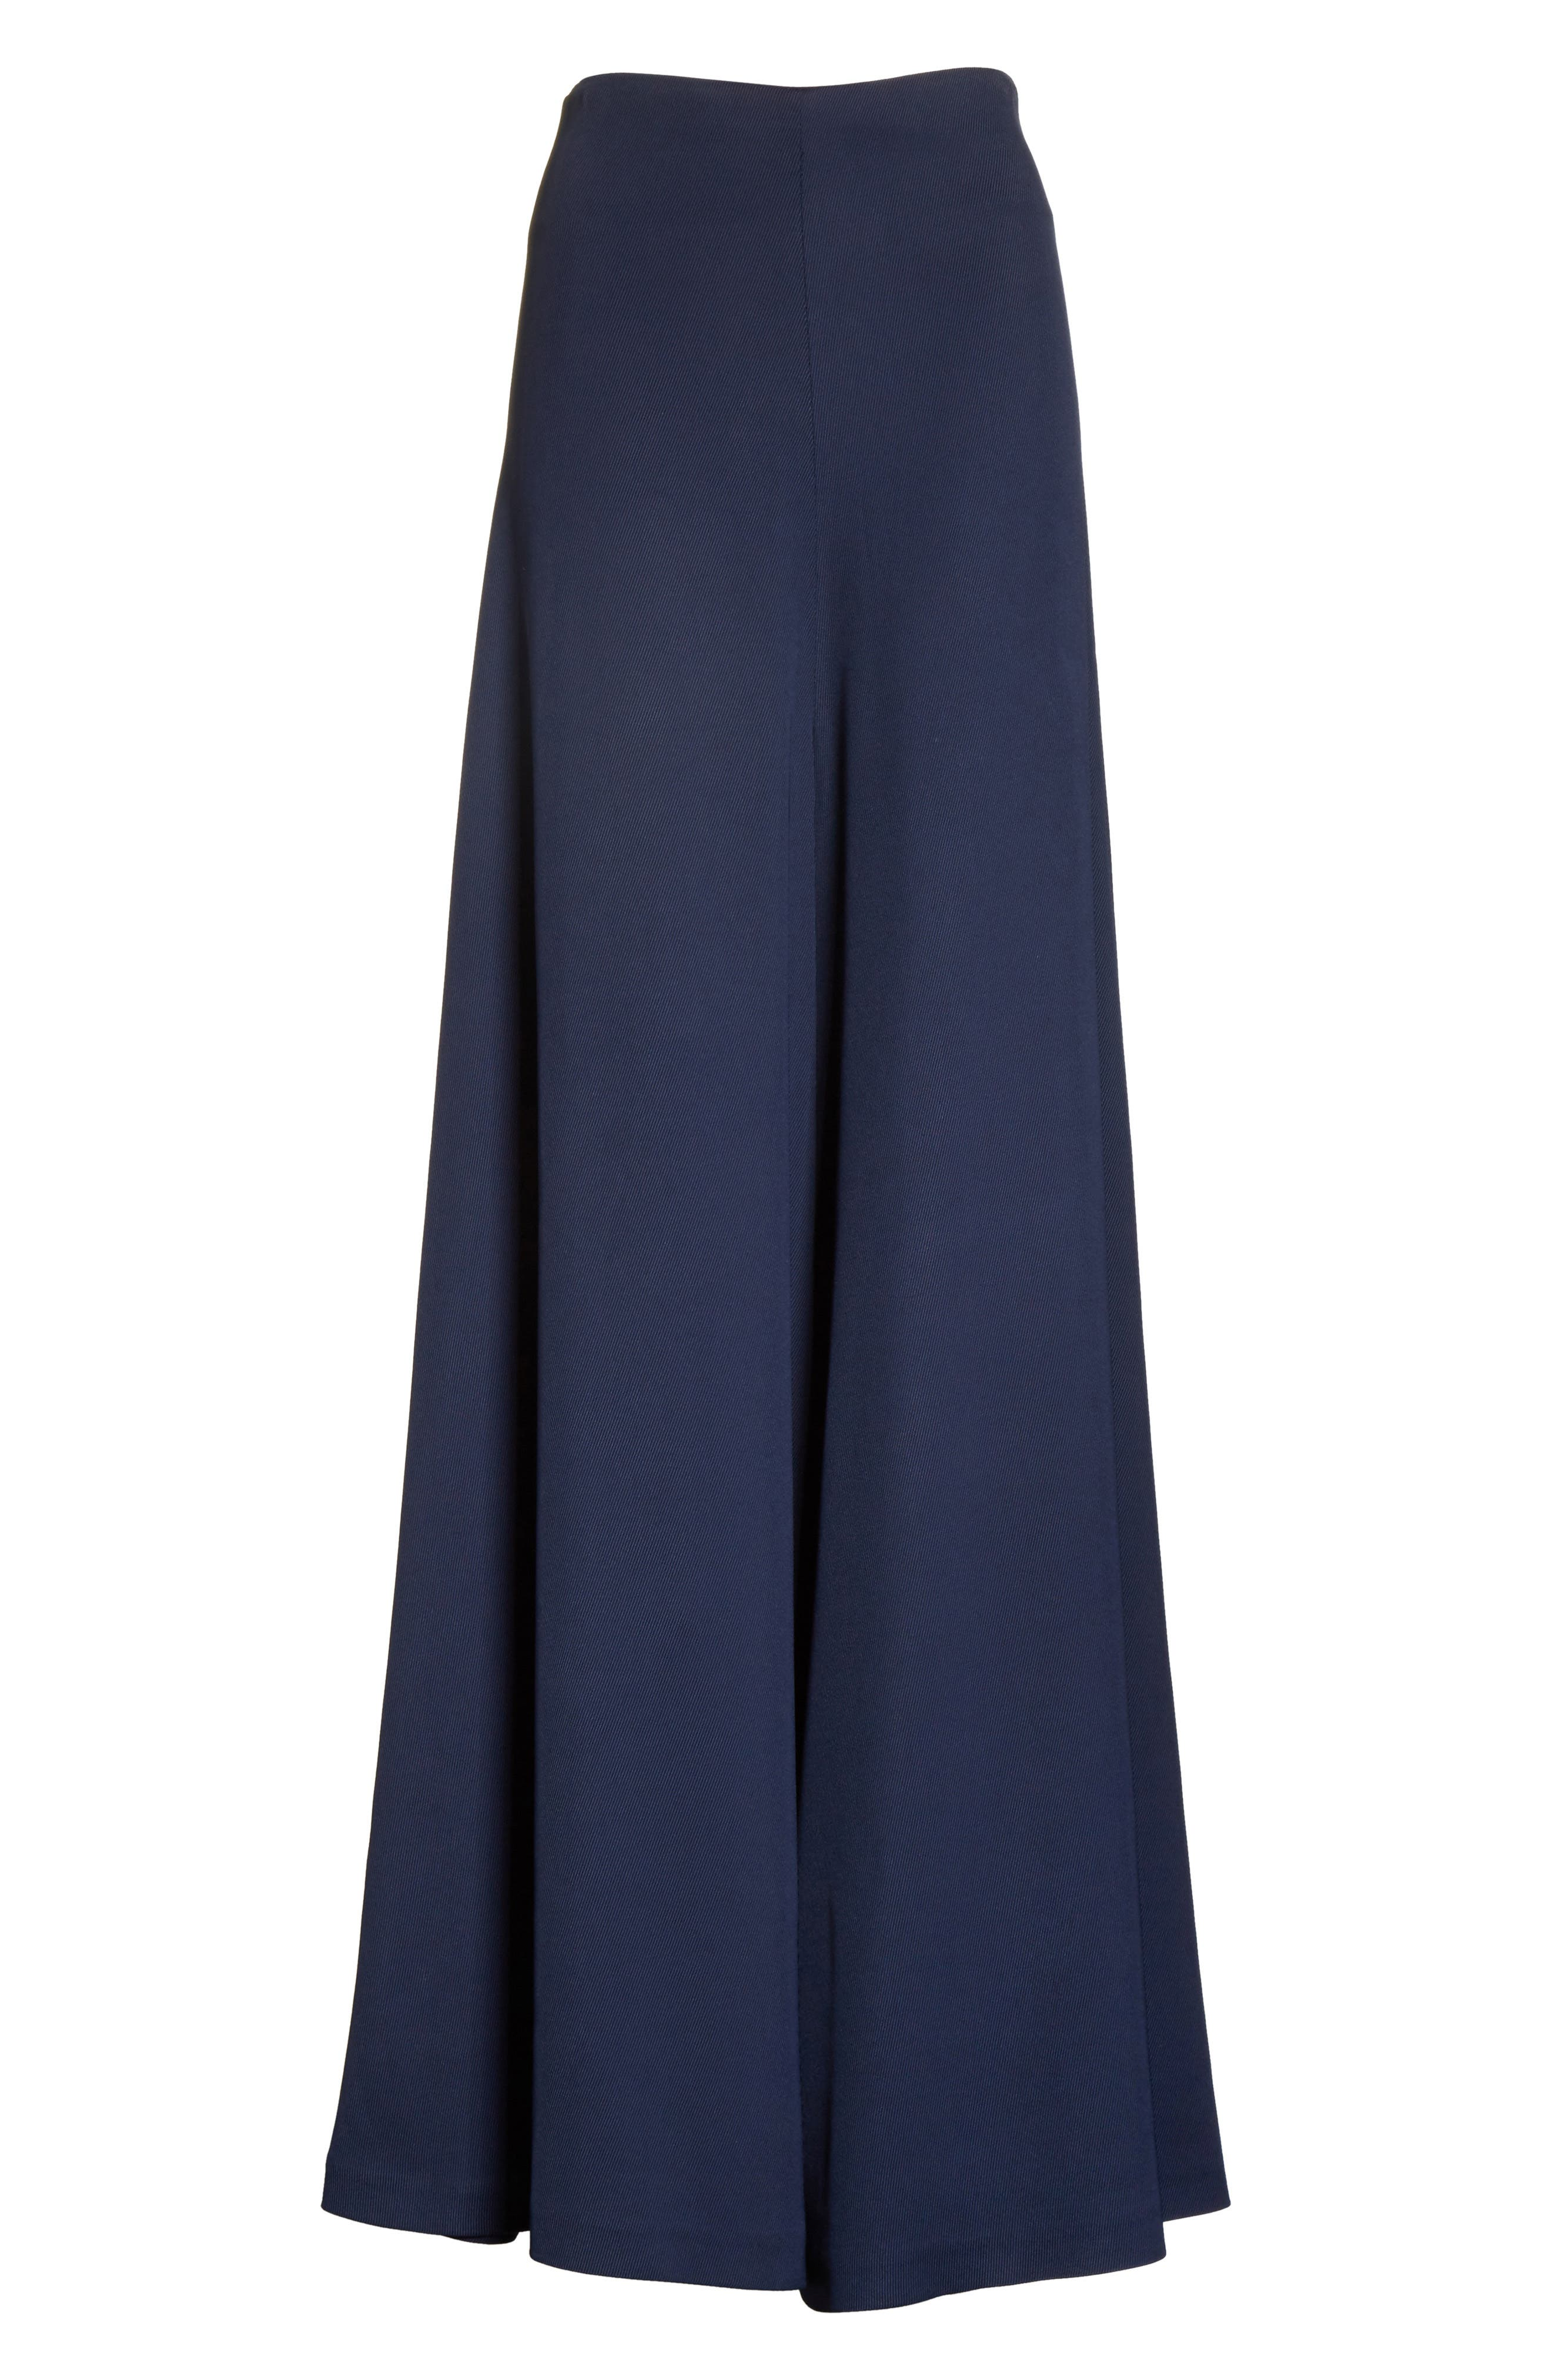 Wide Leg Trousers,                             Alternate thumbnail 6, color,                             Navy